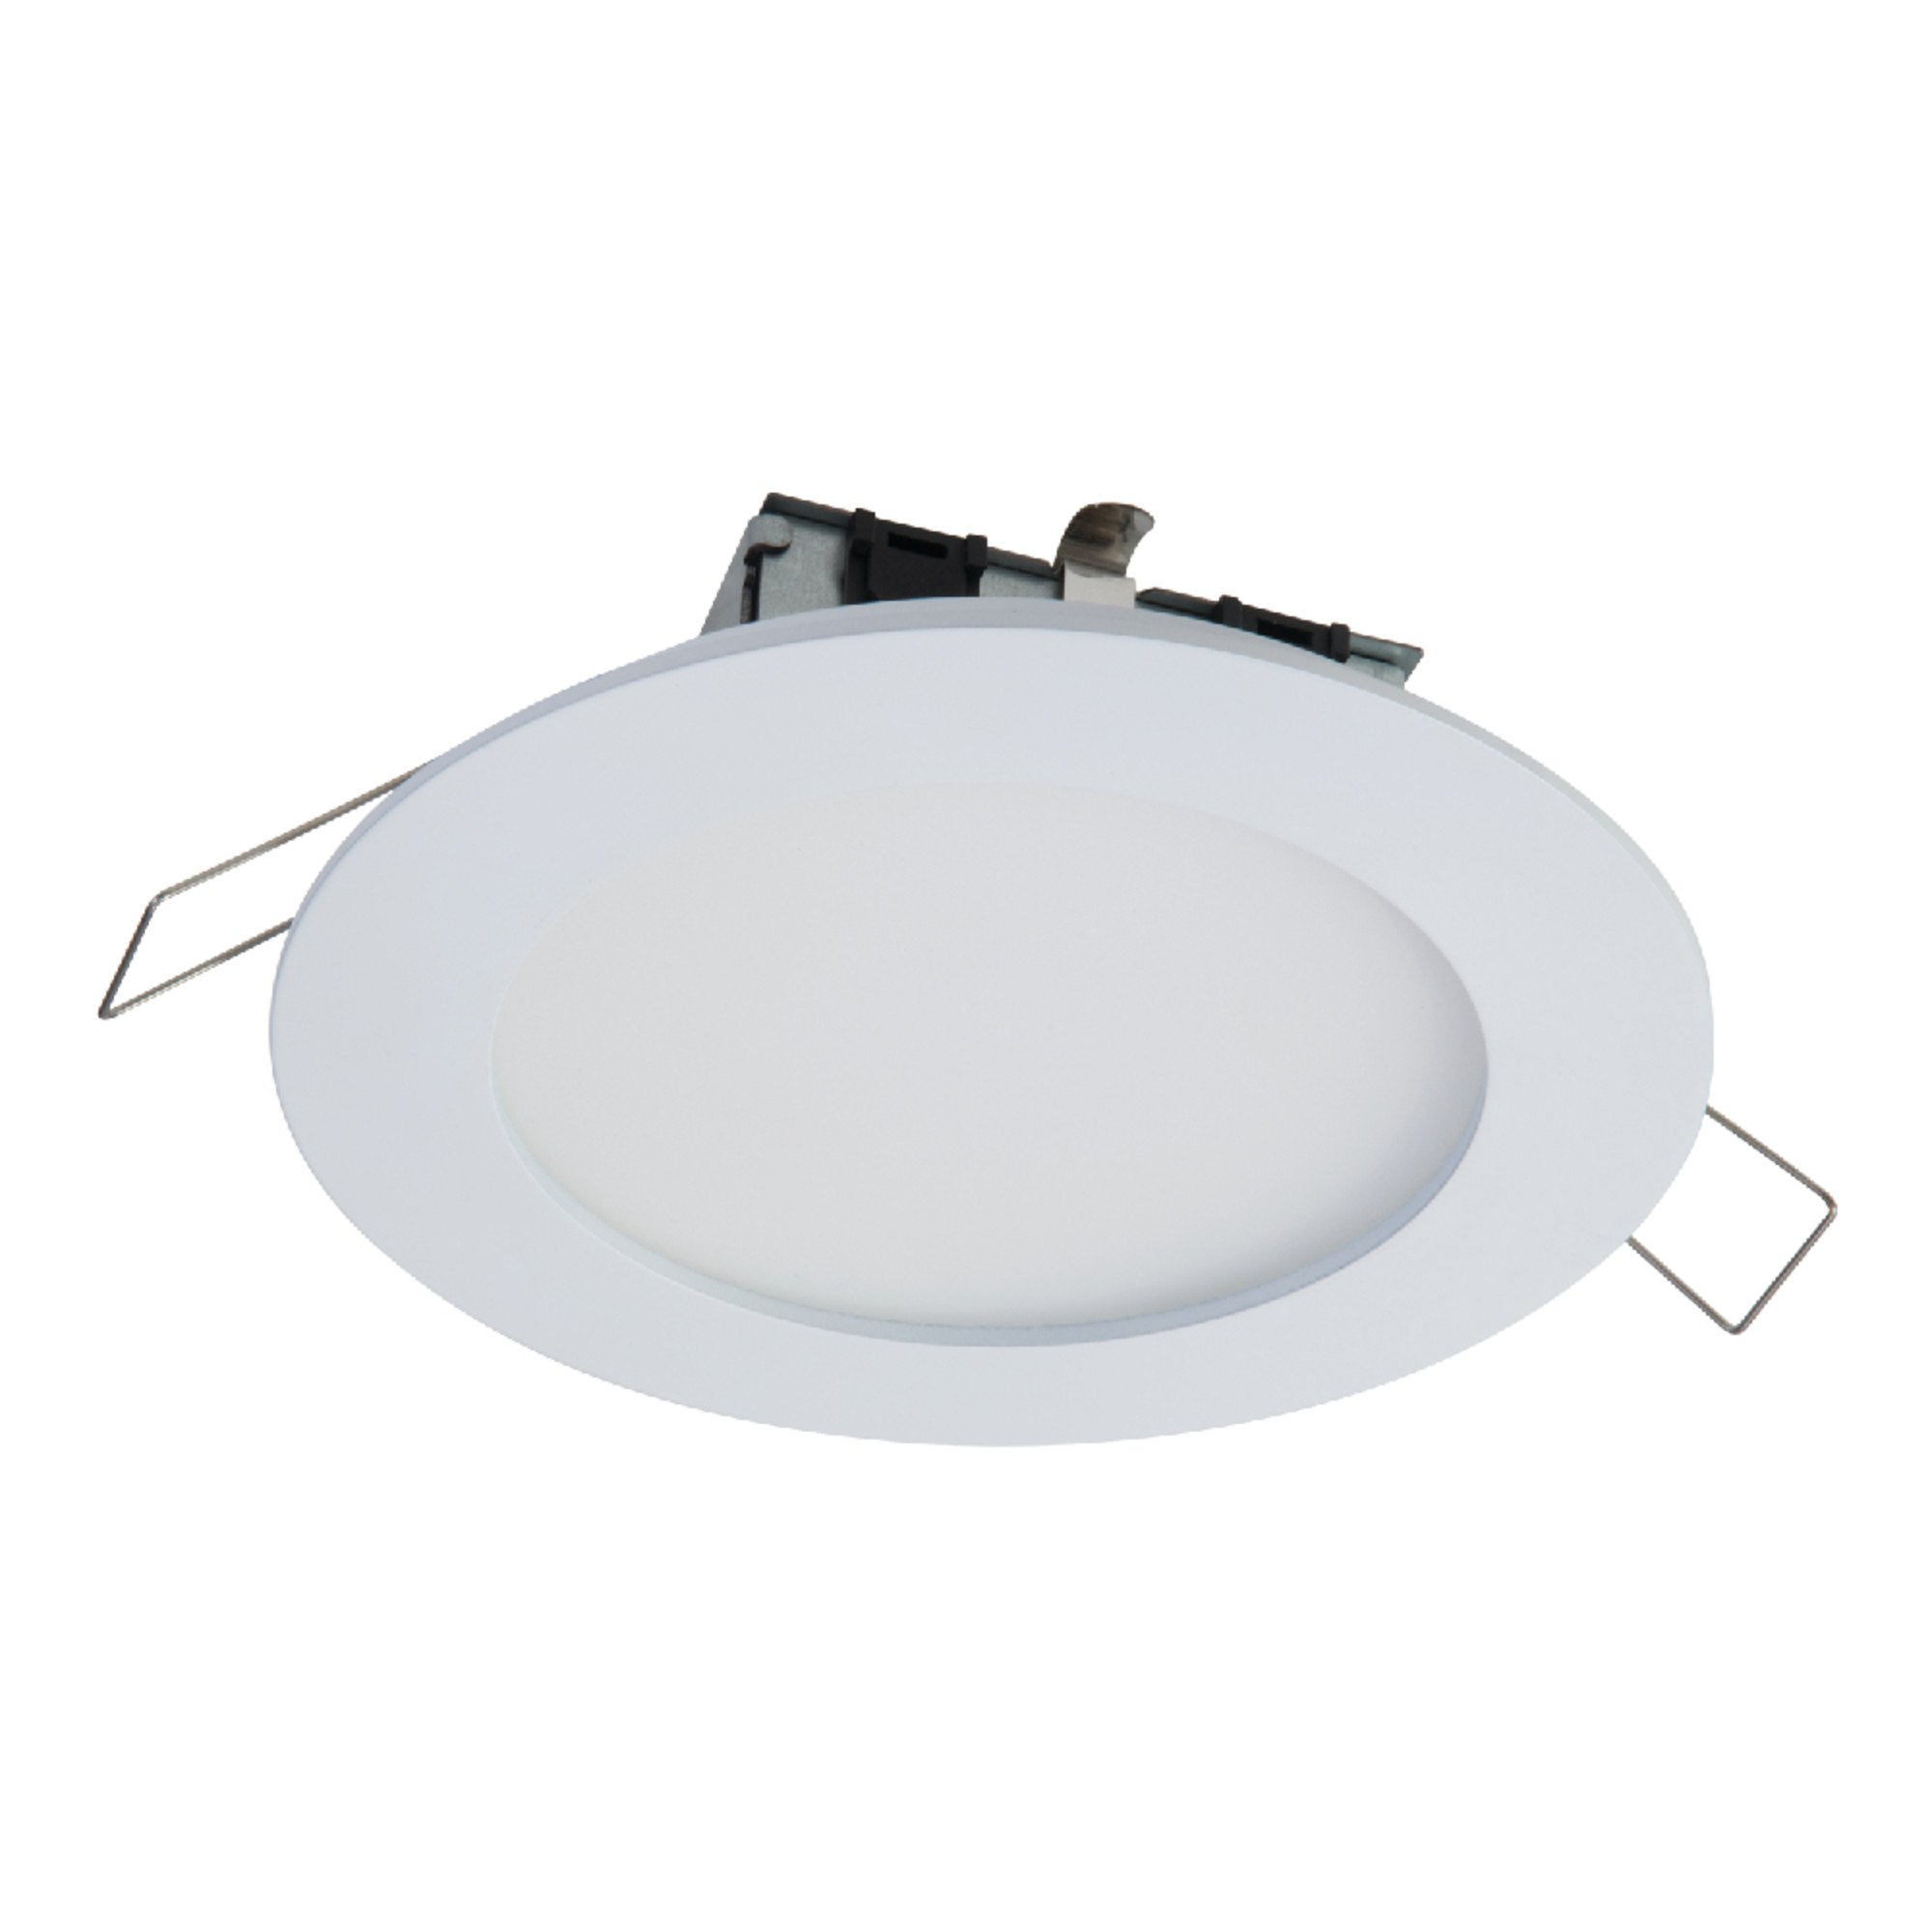 Halo SMD4R6927WHDM SMD 4'' Integrated LED Recessed Round Trim Downlight Direct Mount 90 CRI 2700K CCT, White